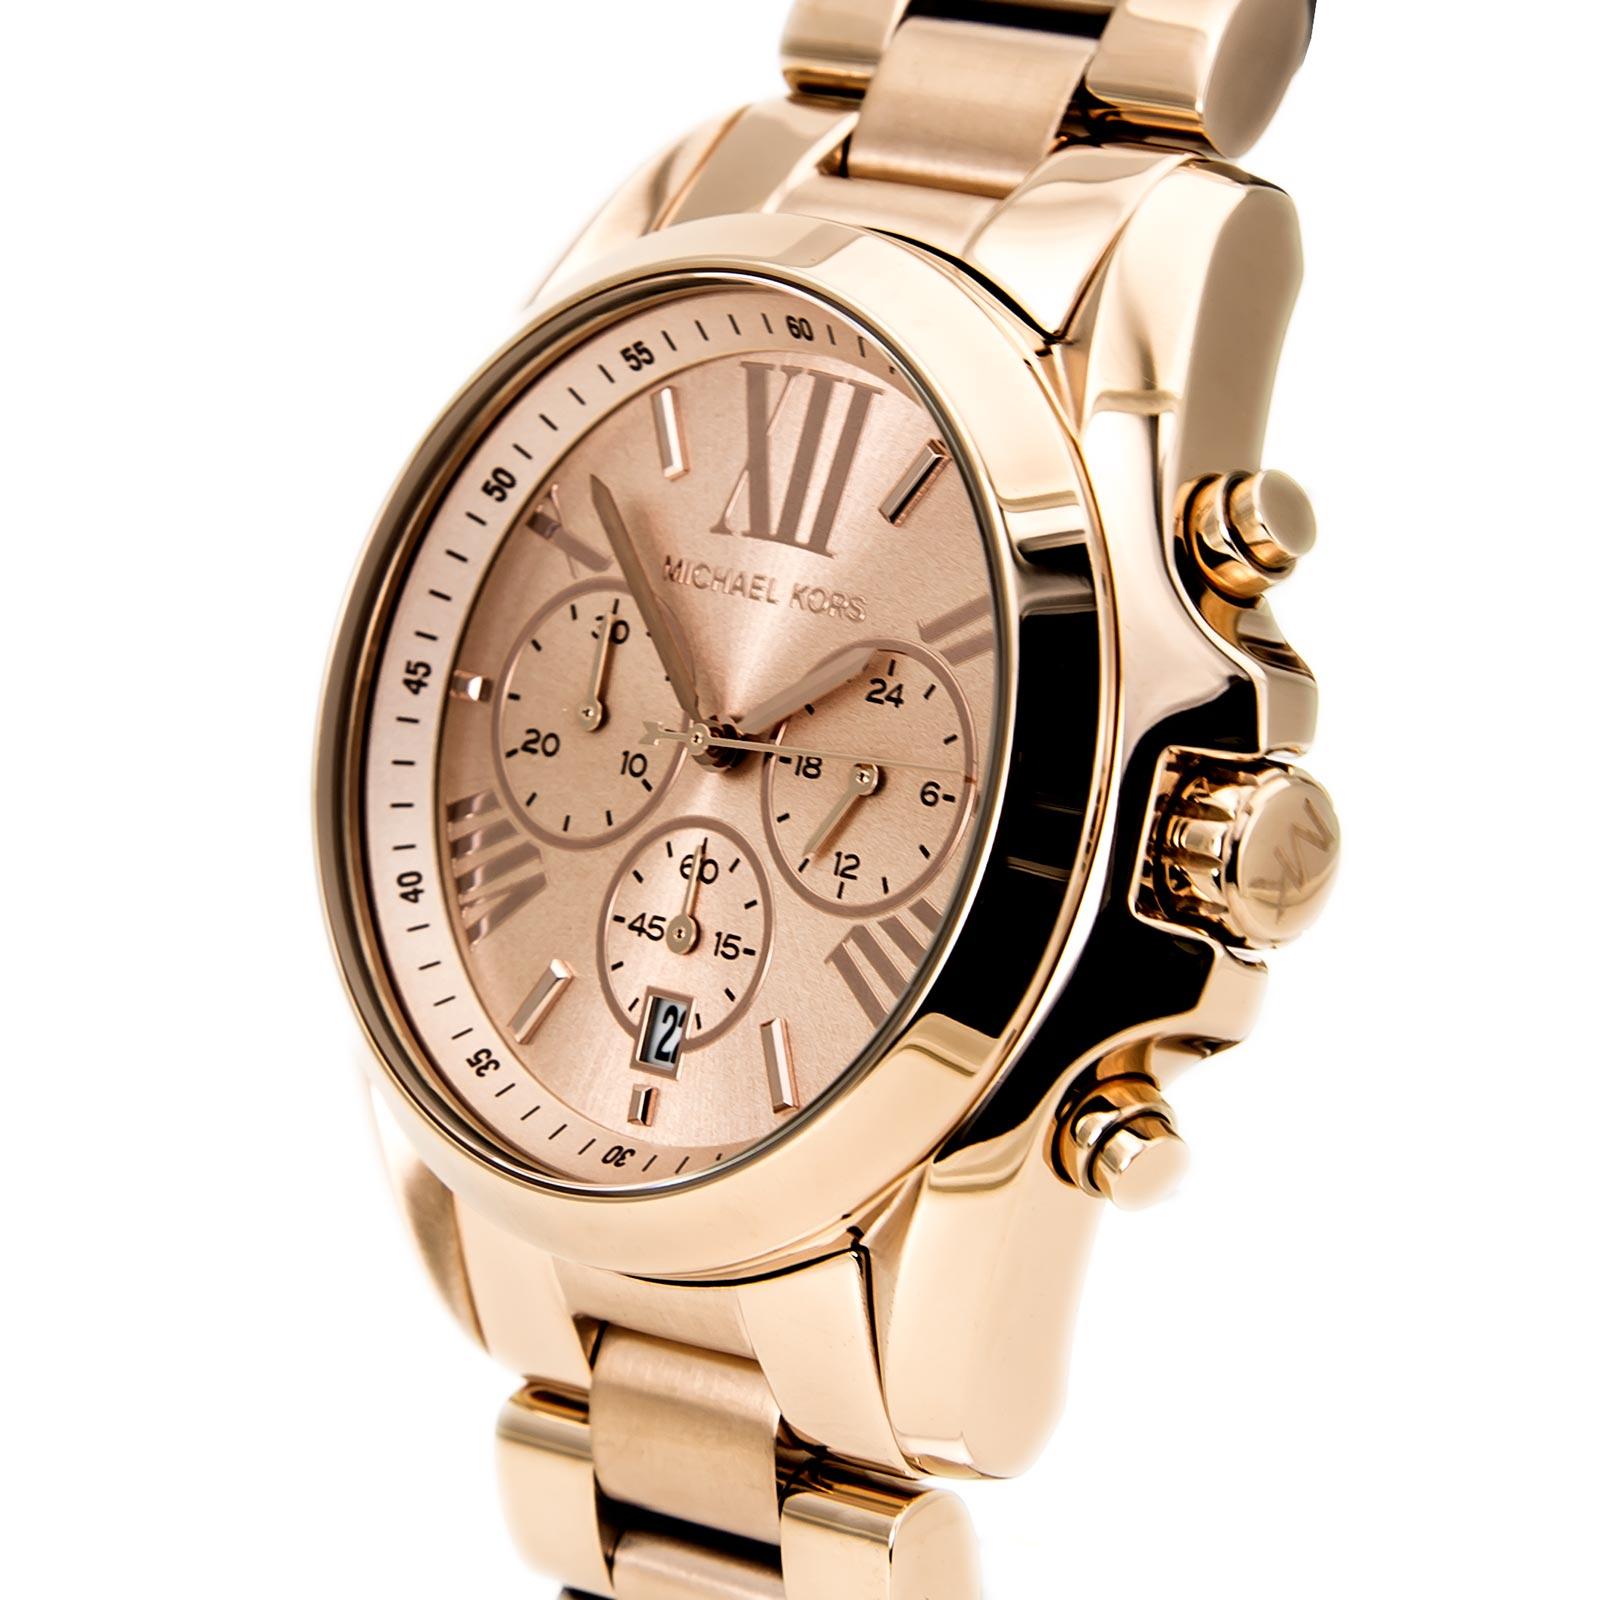 d81c18139e7b MICHAEL KORS MK5799 ROSE GOLD BRADSHAW MINI WATCH - 2 YEAR WARRANTY ...